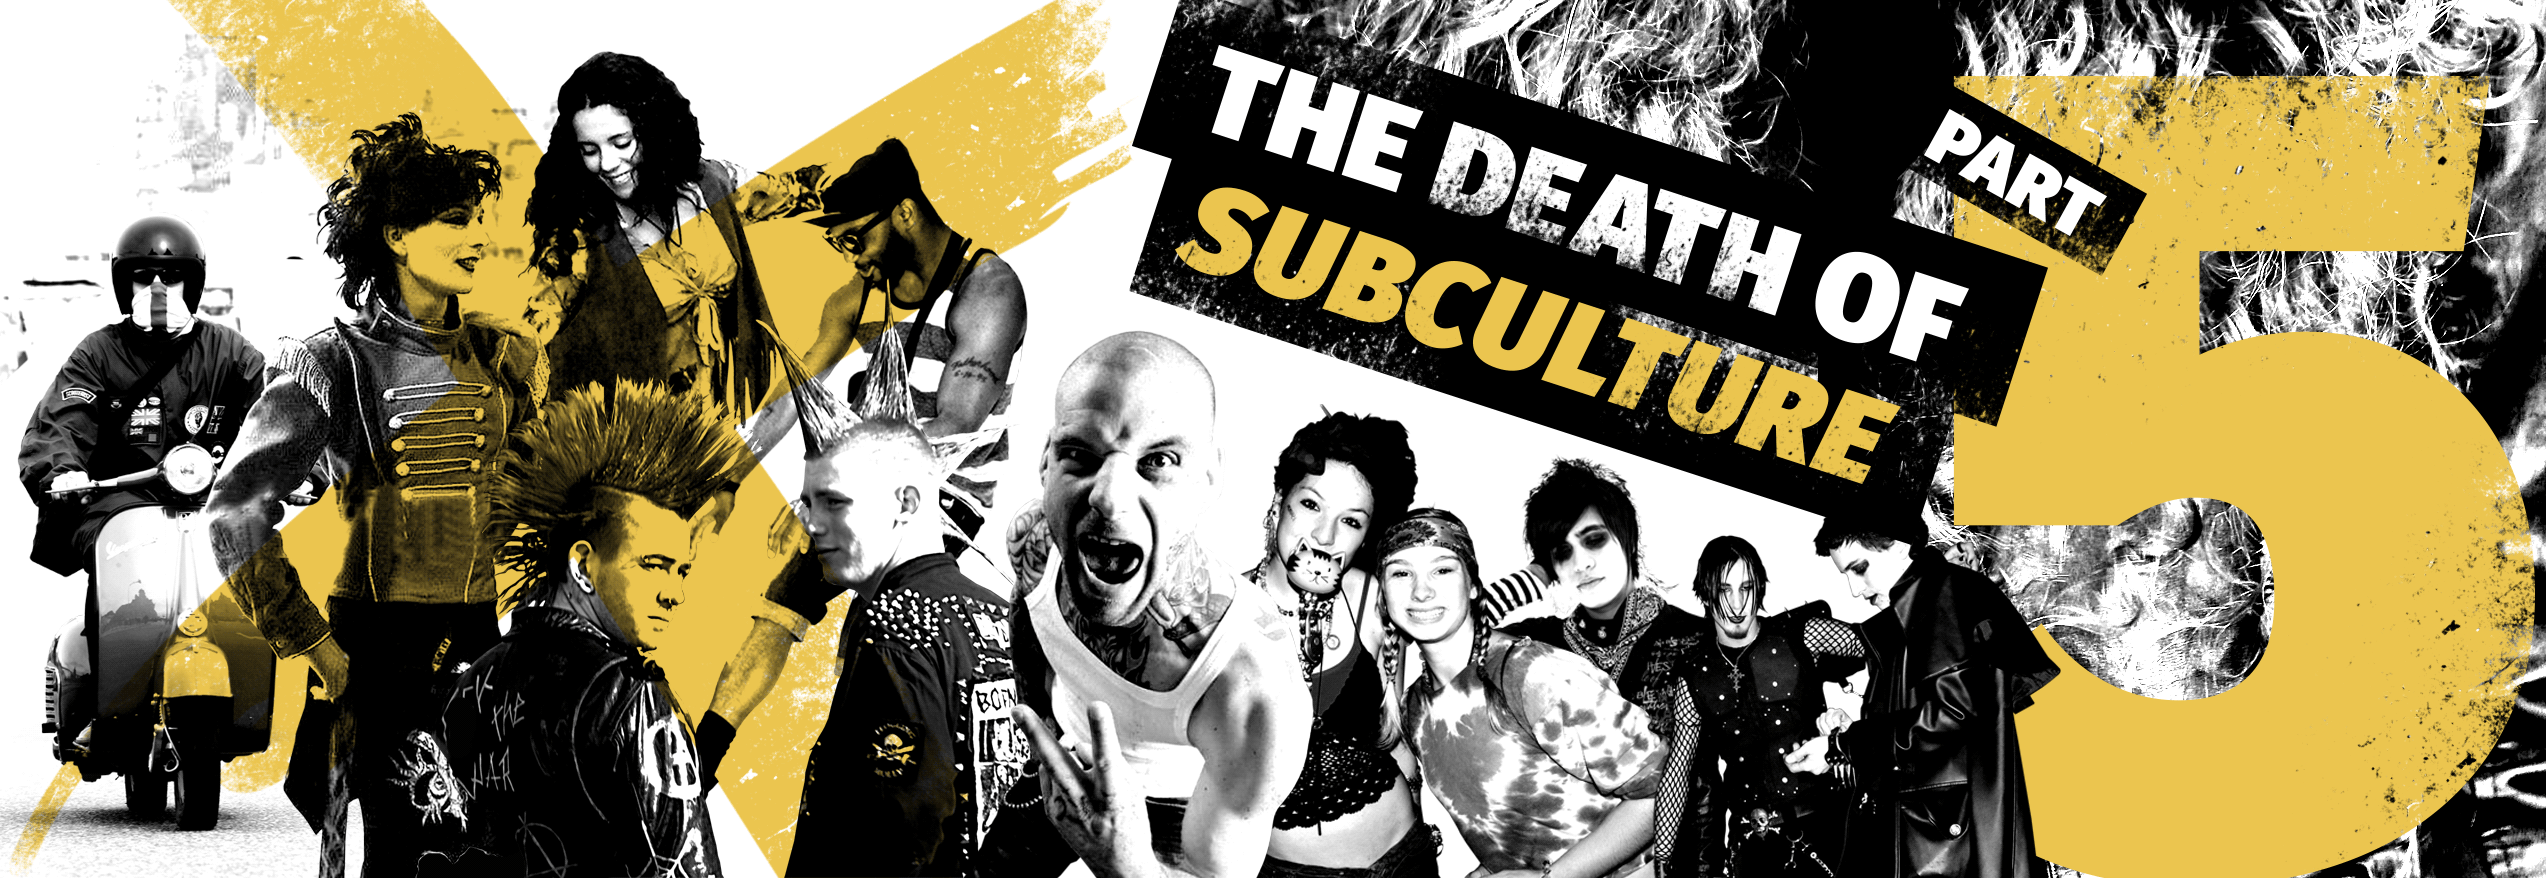 The Death Of Subculture part 5: the role of the media and the internet. Plus: generational conflict and body modification